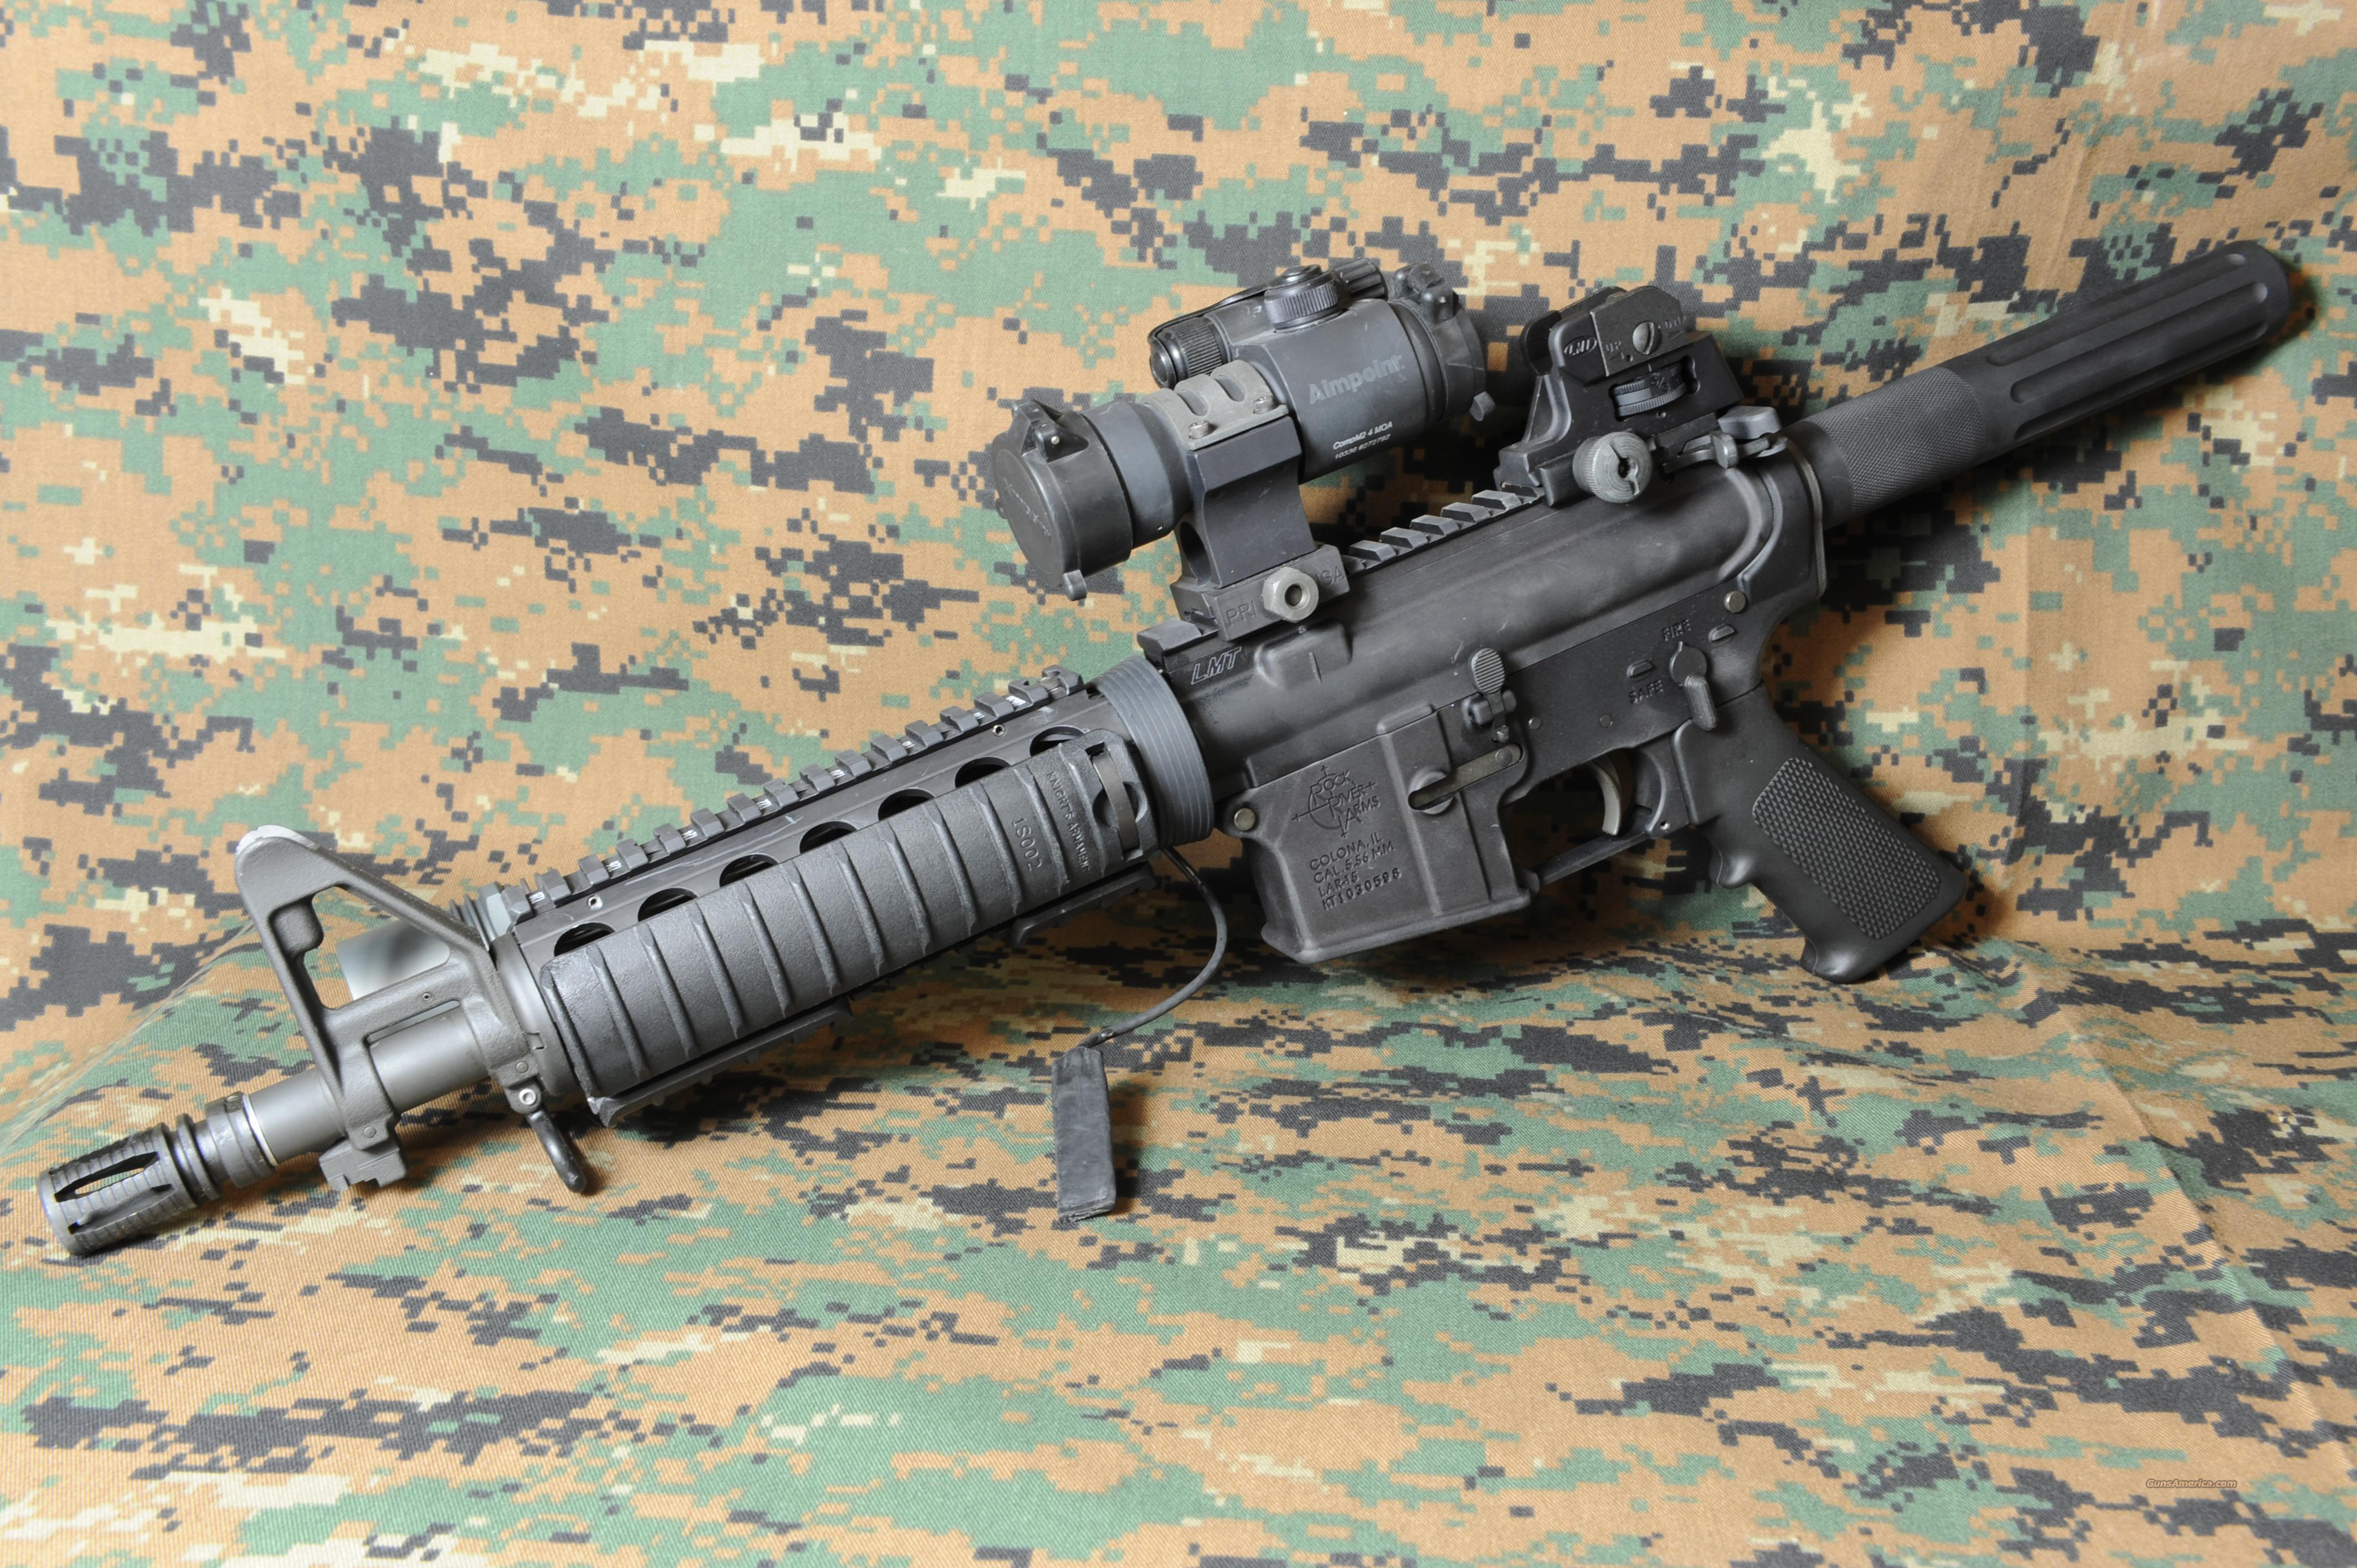 Rock River Arms/Lewis Machine & Tool Mk 18 Mod 0 pistol  Guns > Pistols > Rock River Arms Pistols